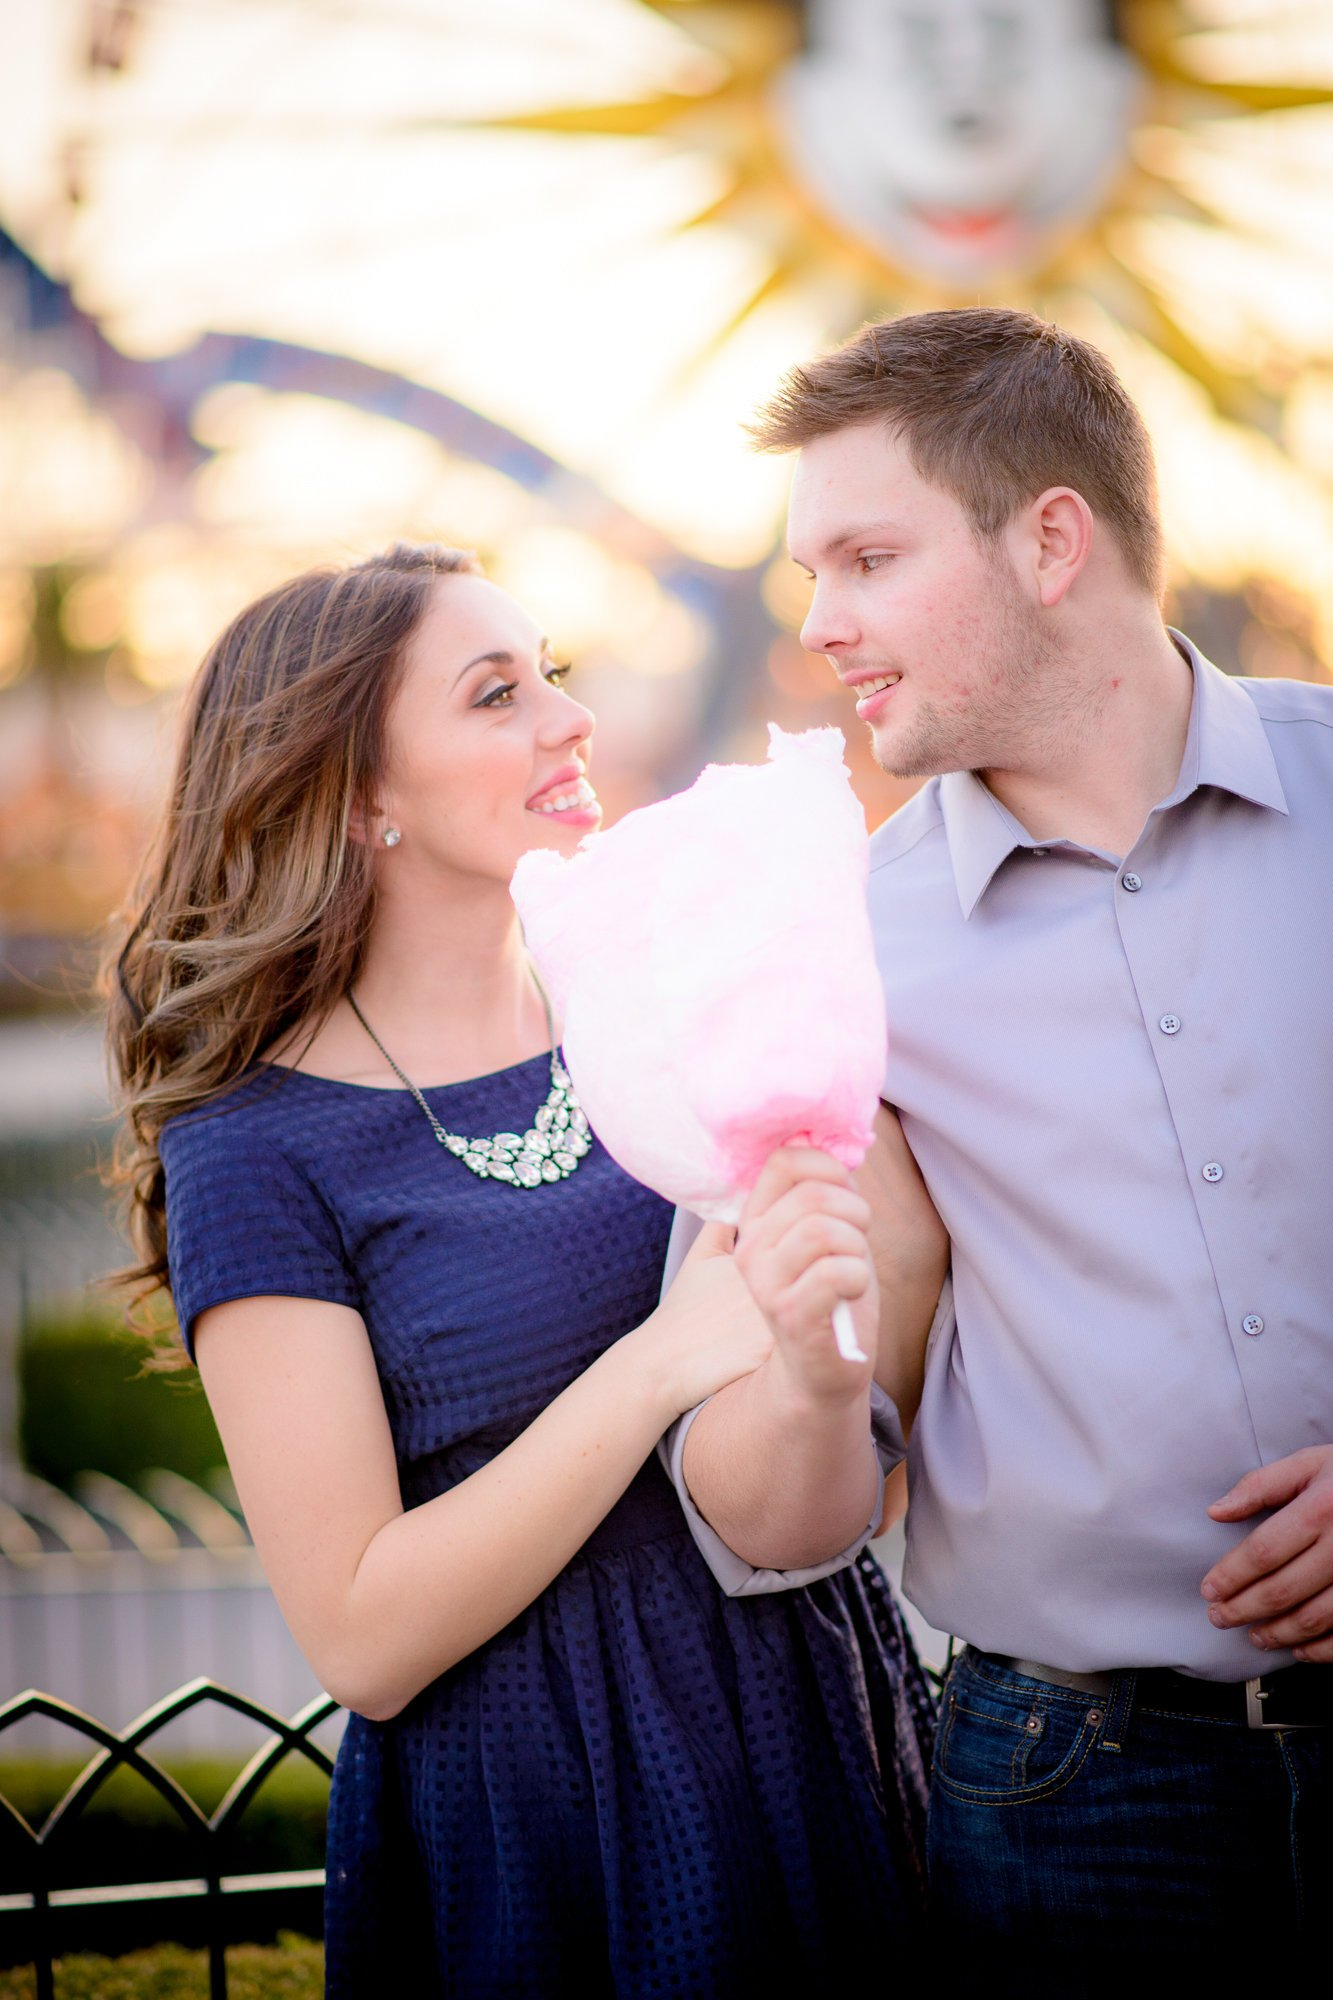 Mehlberg couple sharing cotton candy